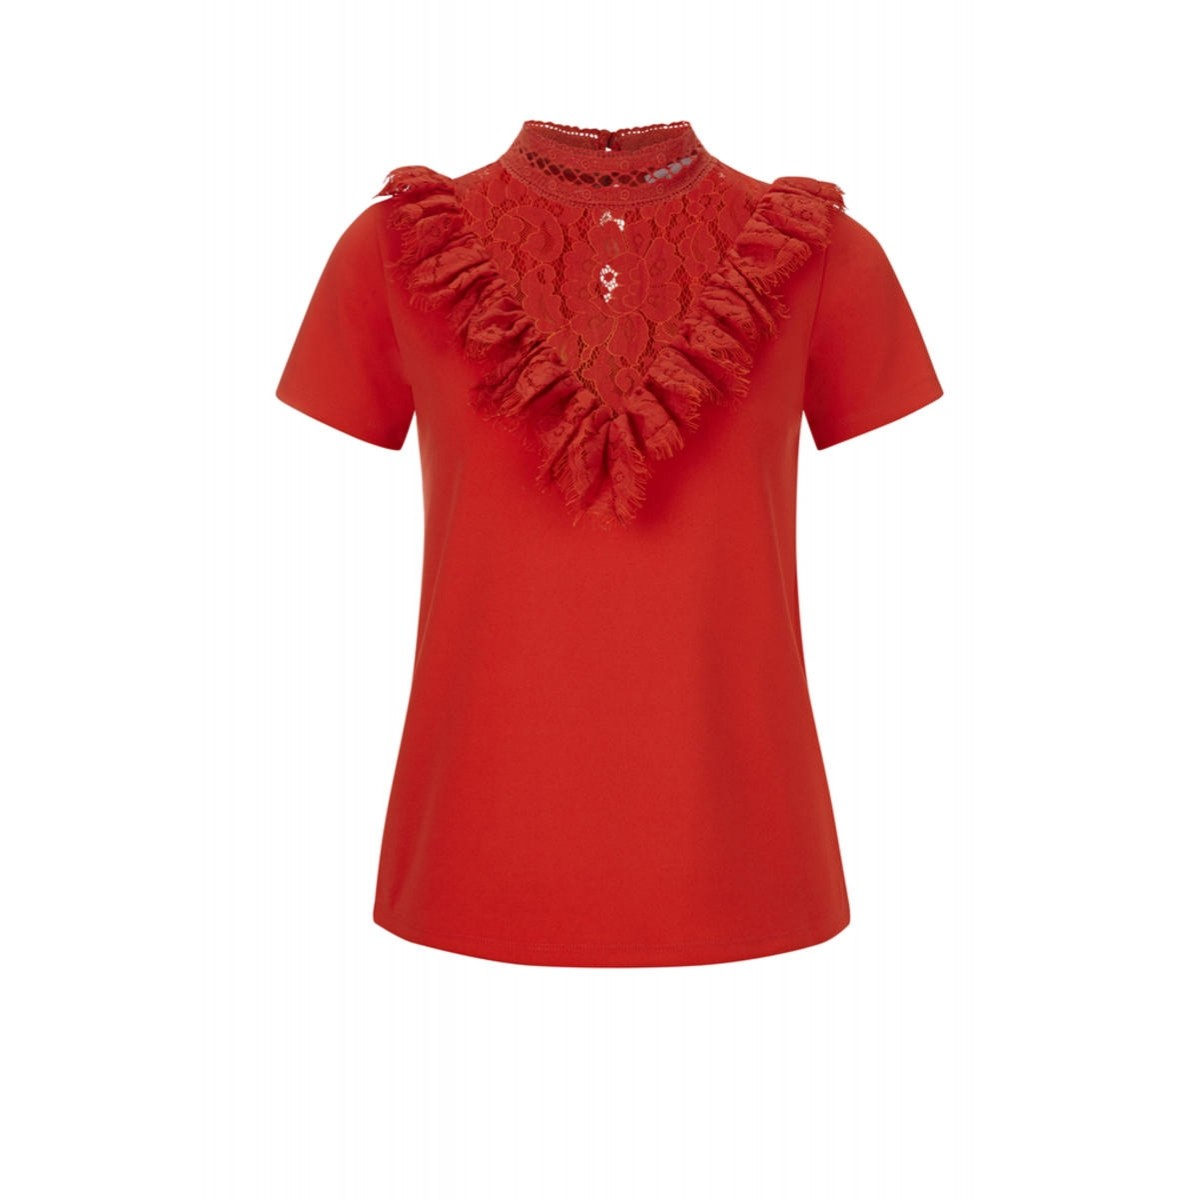 237f175c7a2b T-shirt with decorative lace collar by Rich   Royal - red - 36